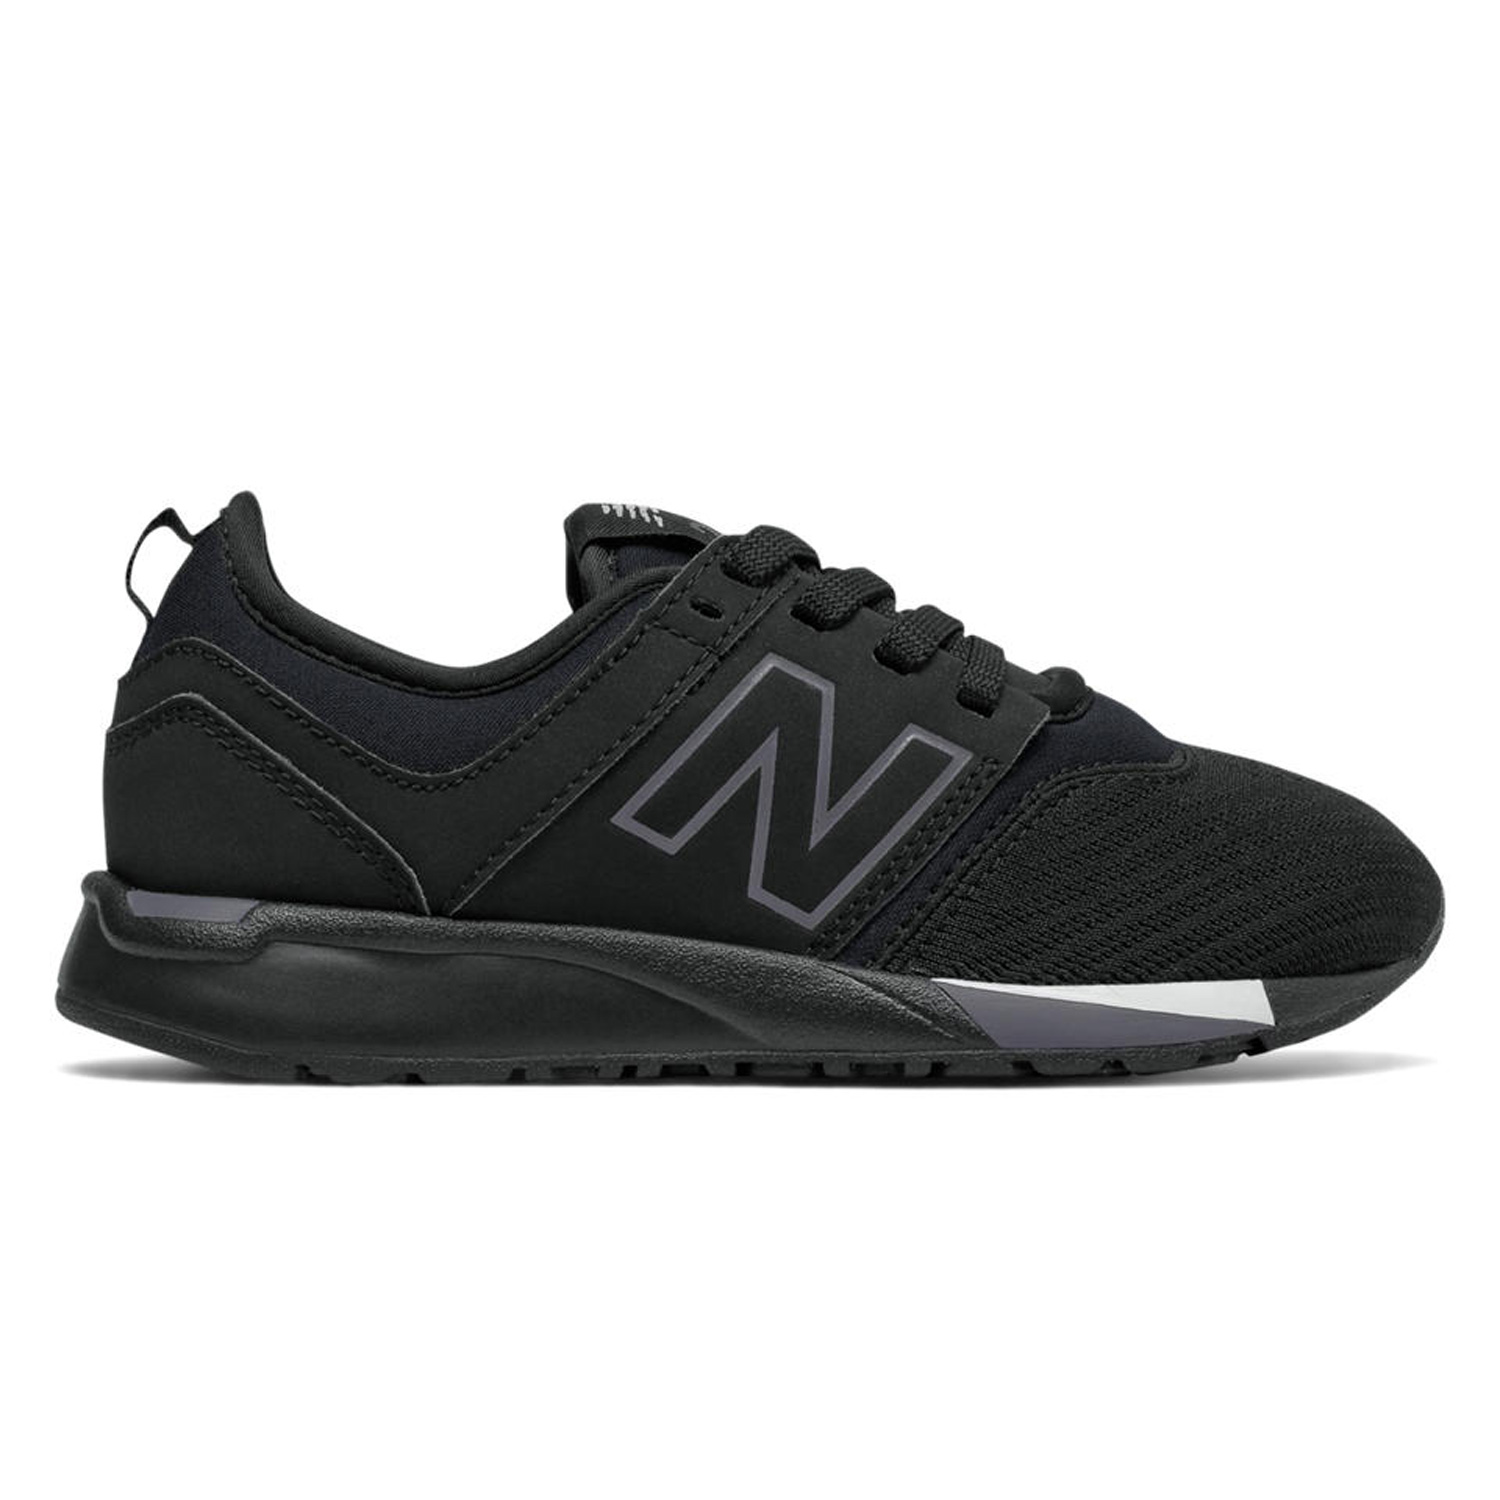 1361ad852e Details about New Balance 247 Classic Kids Sneaker Shoes Black White  KL247BWP KL247BWG